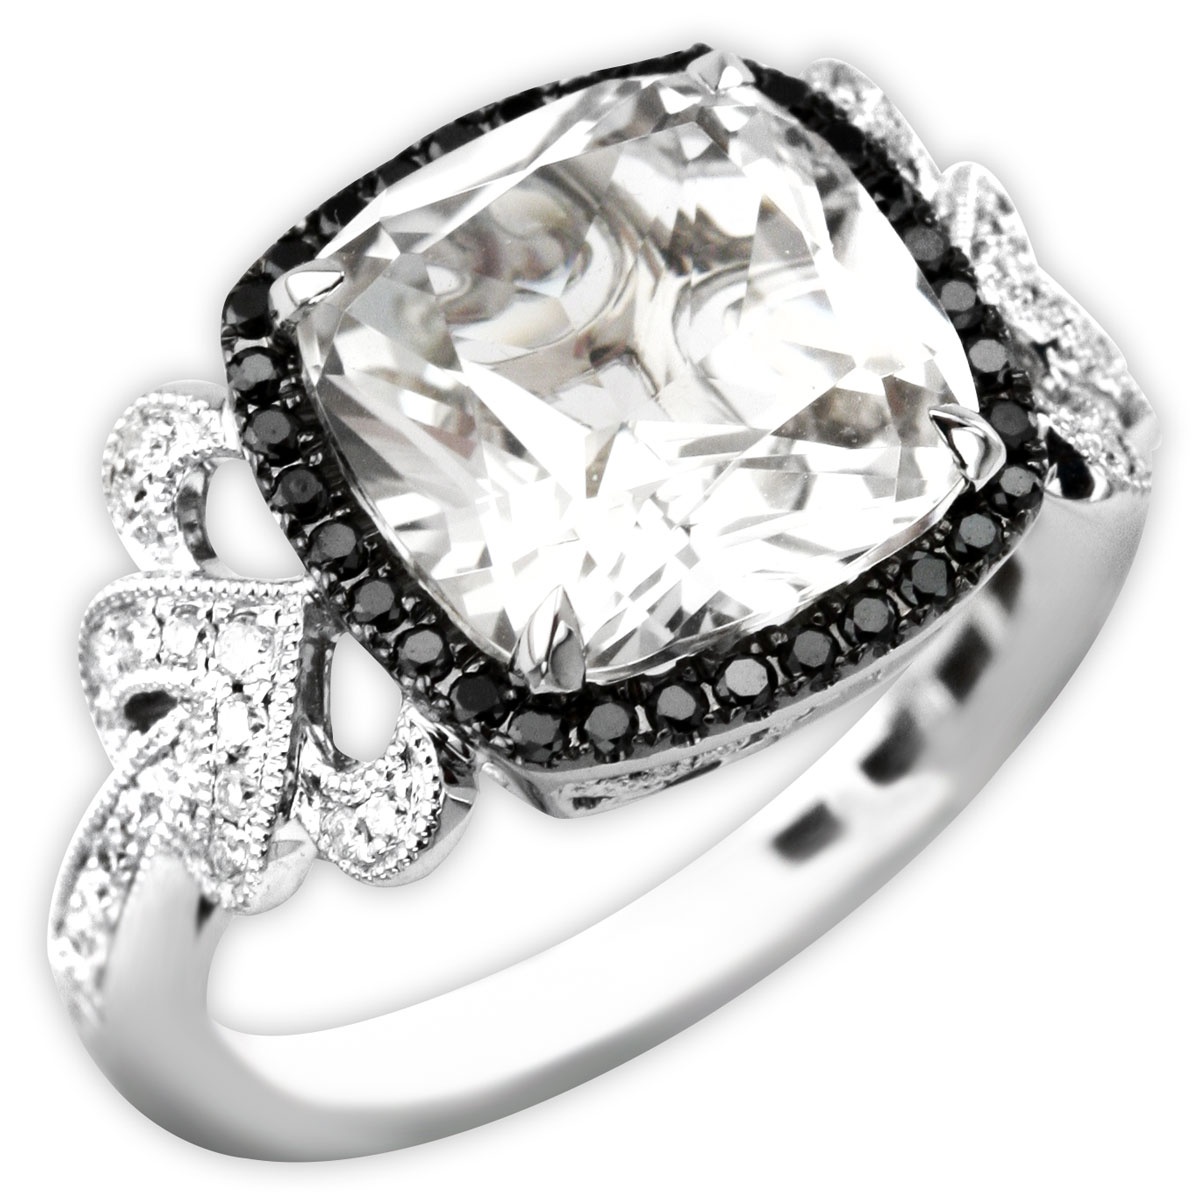 339573-White Topaz & Diamond Ring